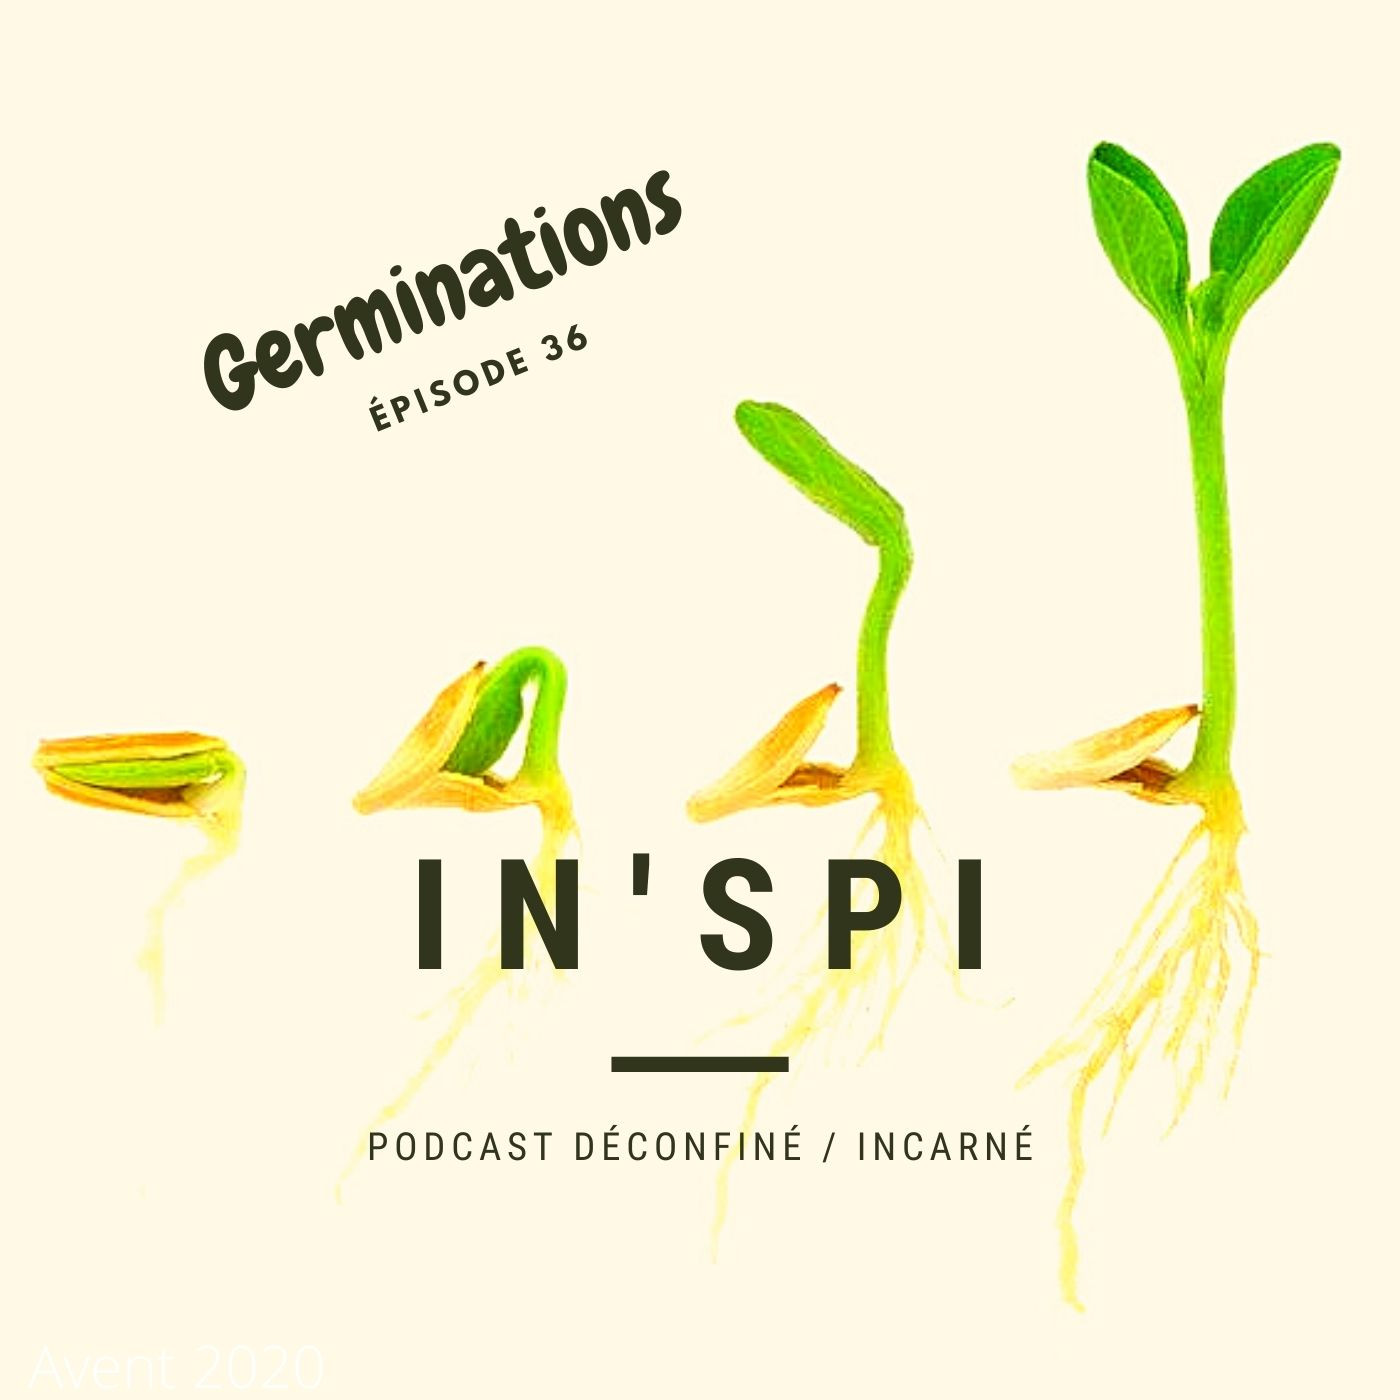 https://medias.podcastics.com/podcastics/episodes/1505/artwork/germinations-inspi.jpg.309ede796aaef475c9a1b12c0e365690.jpg